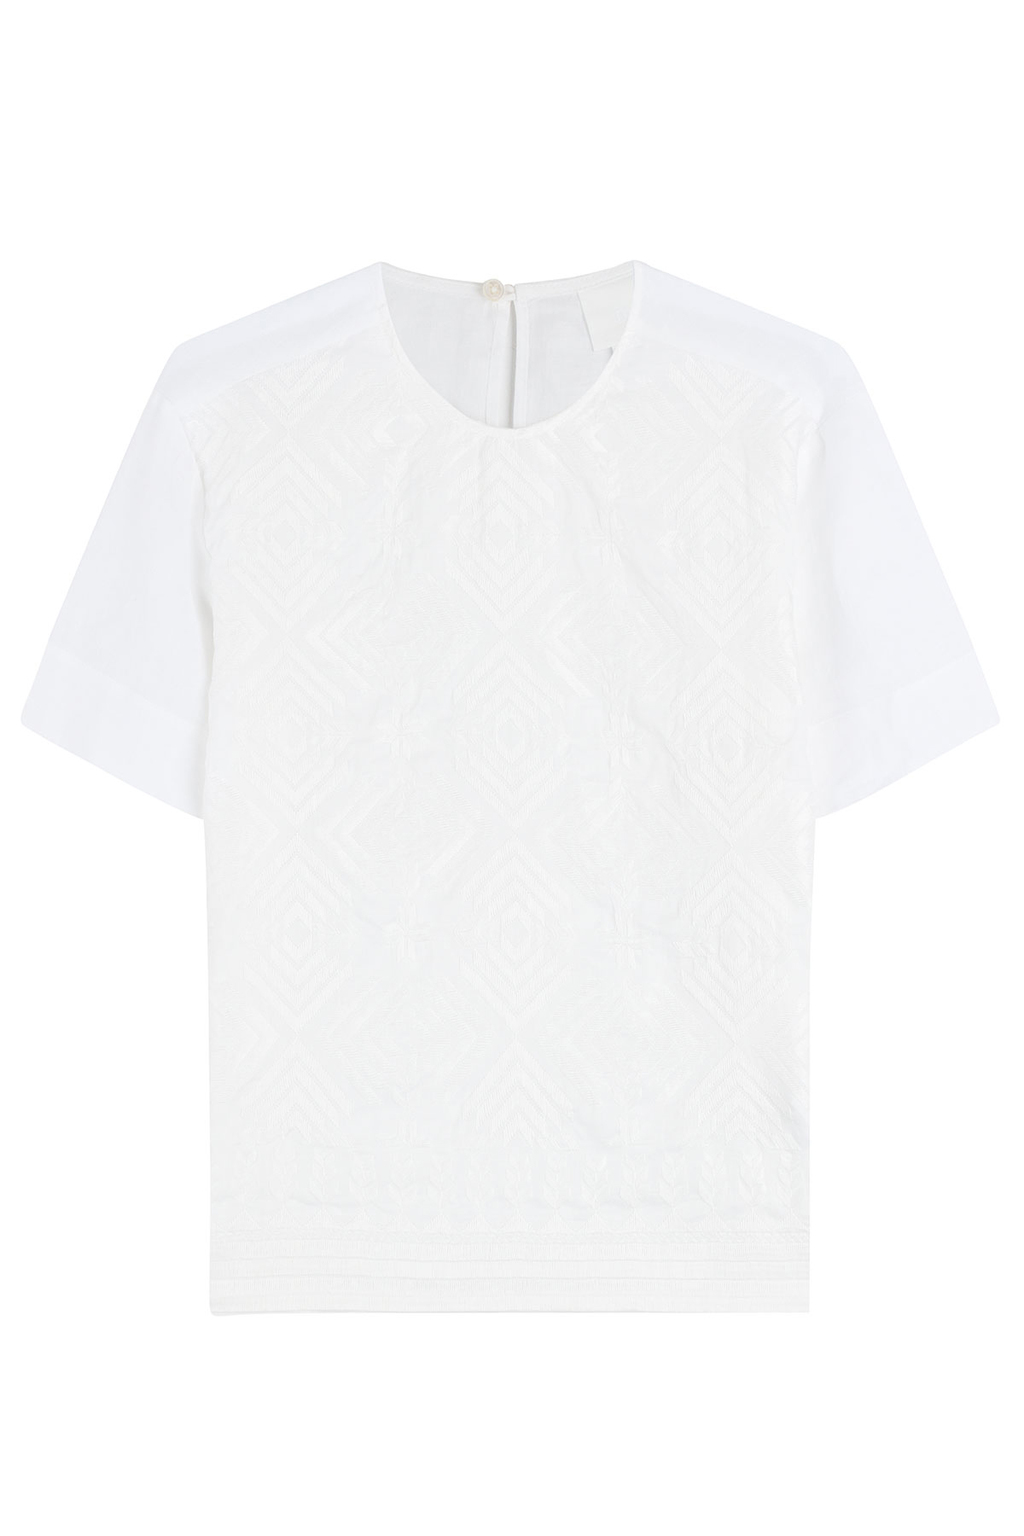 Embroidered Top - neckline: round neck; pattern: plain; predominant colour: white; occasions: casual, creative work; length: standard; style: top; fibres: cotton - 100%; fit: straight cut; sleeve length: short sleeve; sleeve style: standard; pattern type: fabric; texture group: other - light to midweight; embellishment: embroidered; season: s/s 2016; wardrobe: highlight